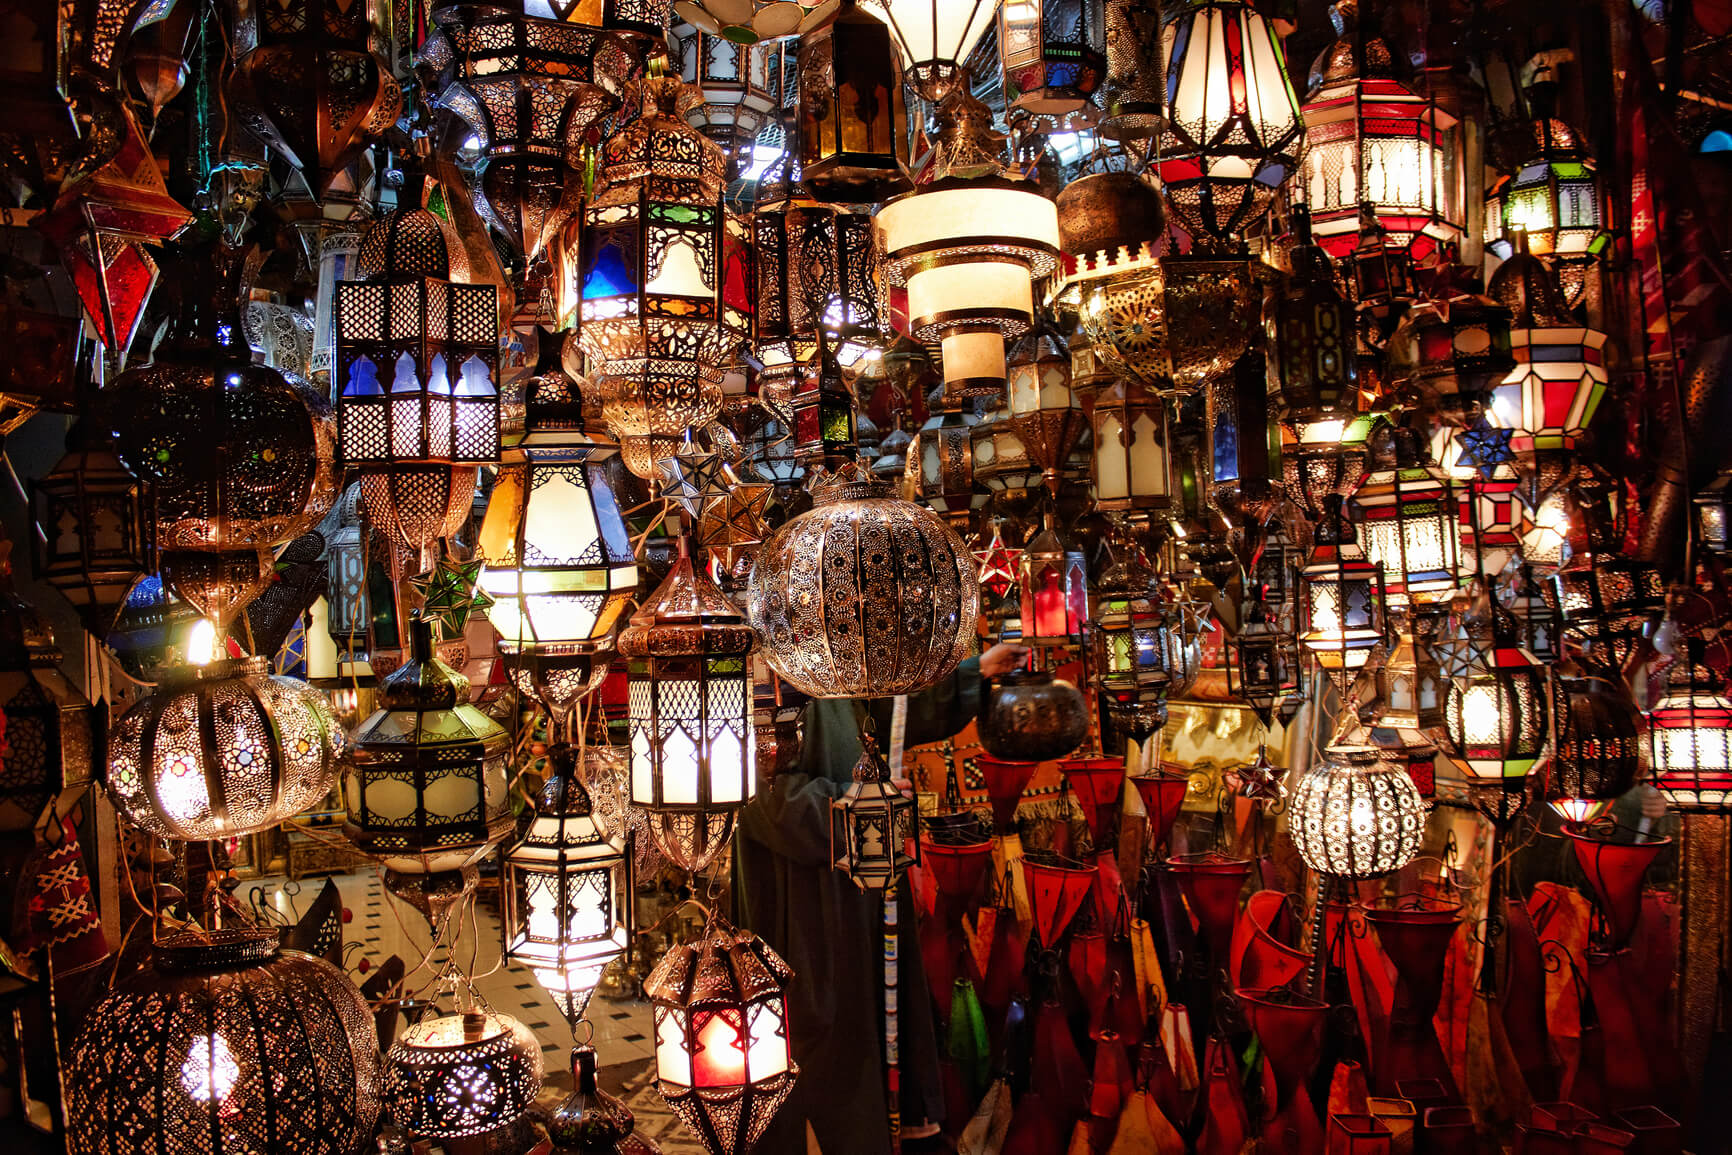 Chicago to Marrakesh, Morocco for only $530 roundtrip